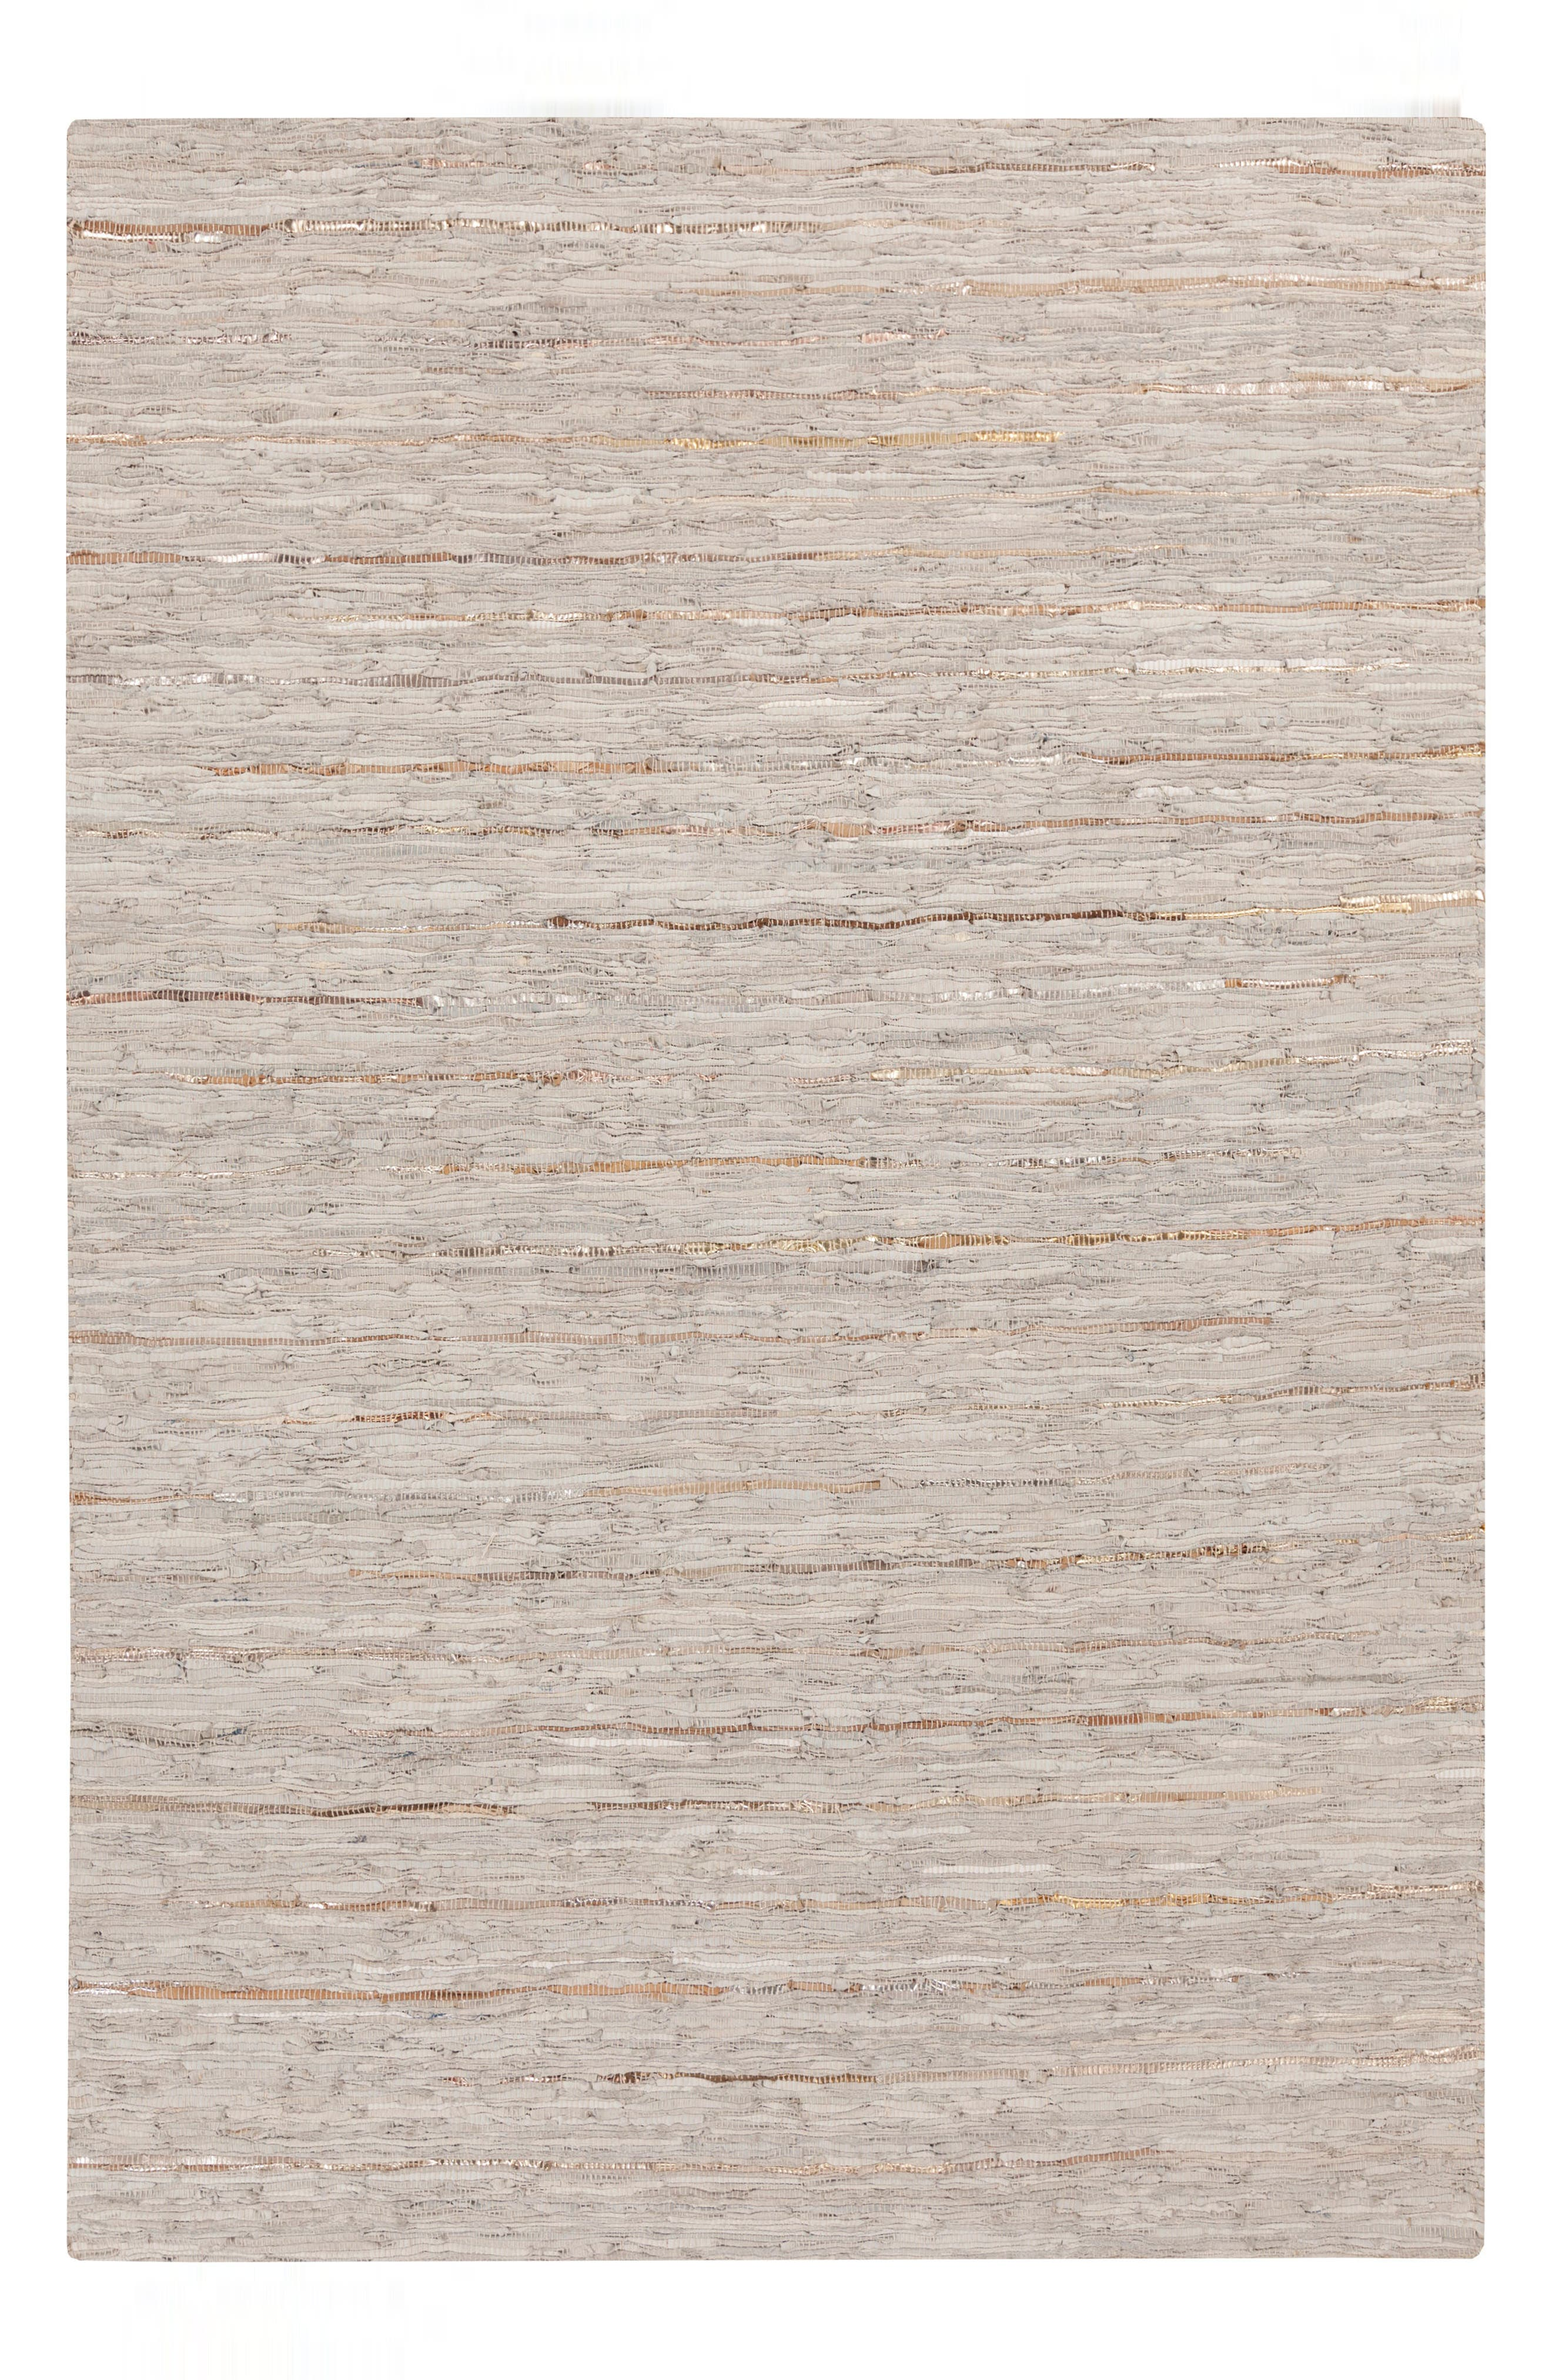 Anthracite Leather Rug,                             Main thumbnail 1, color,                             GREY